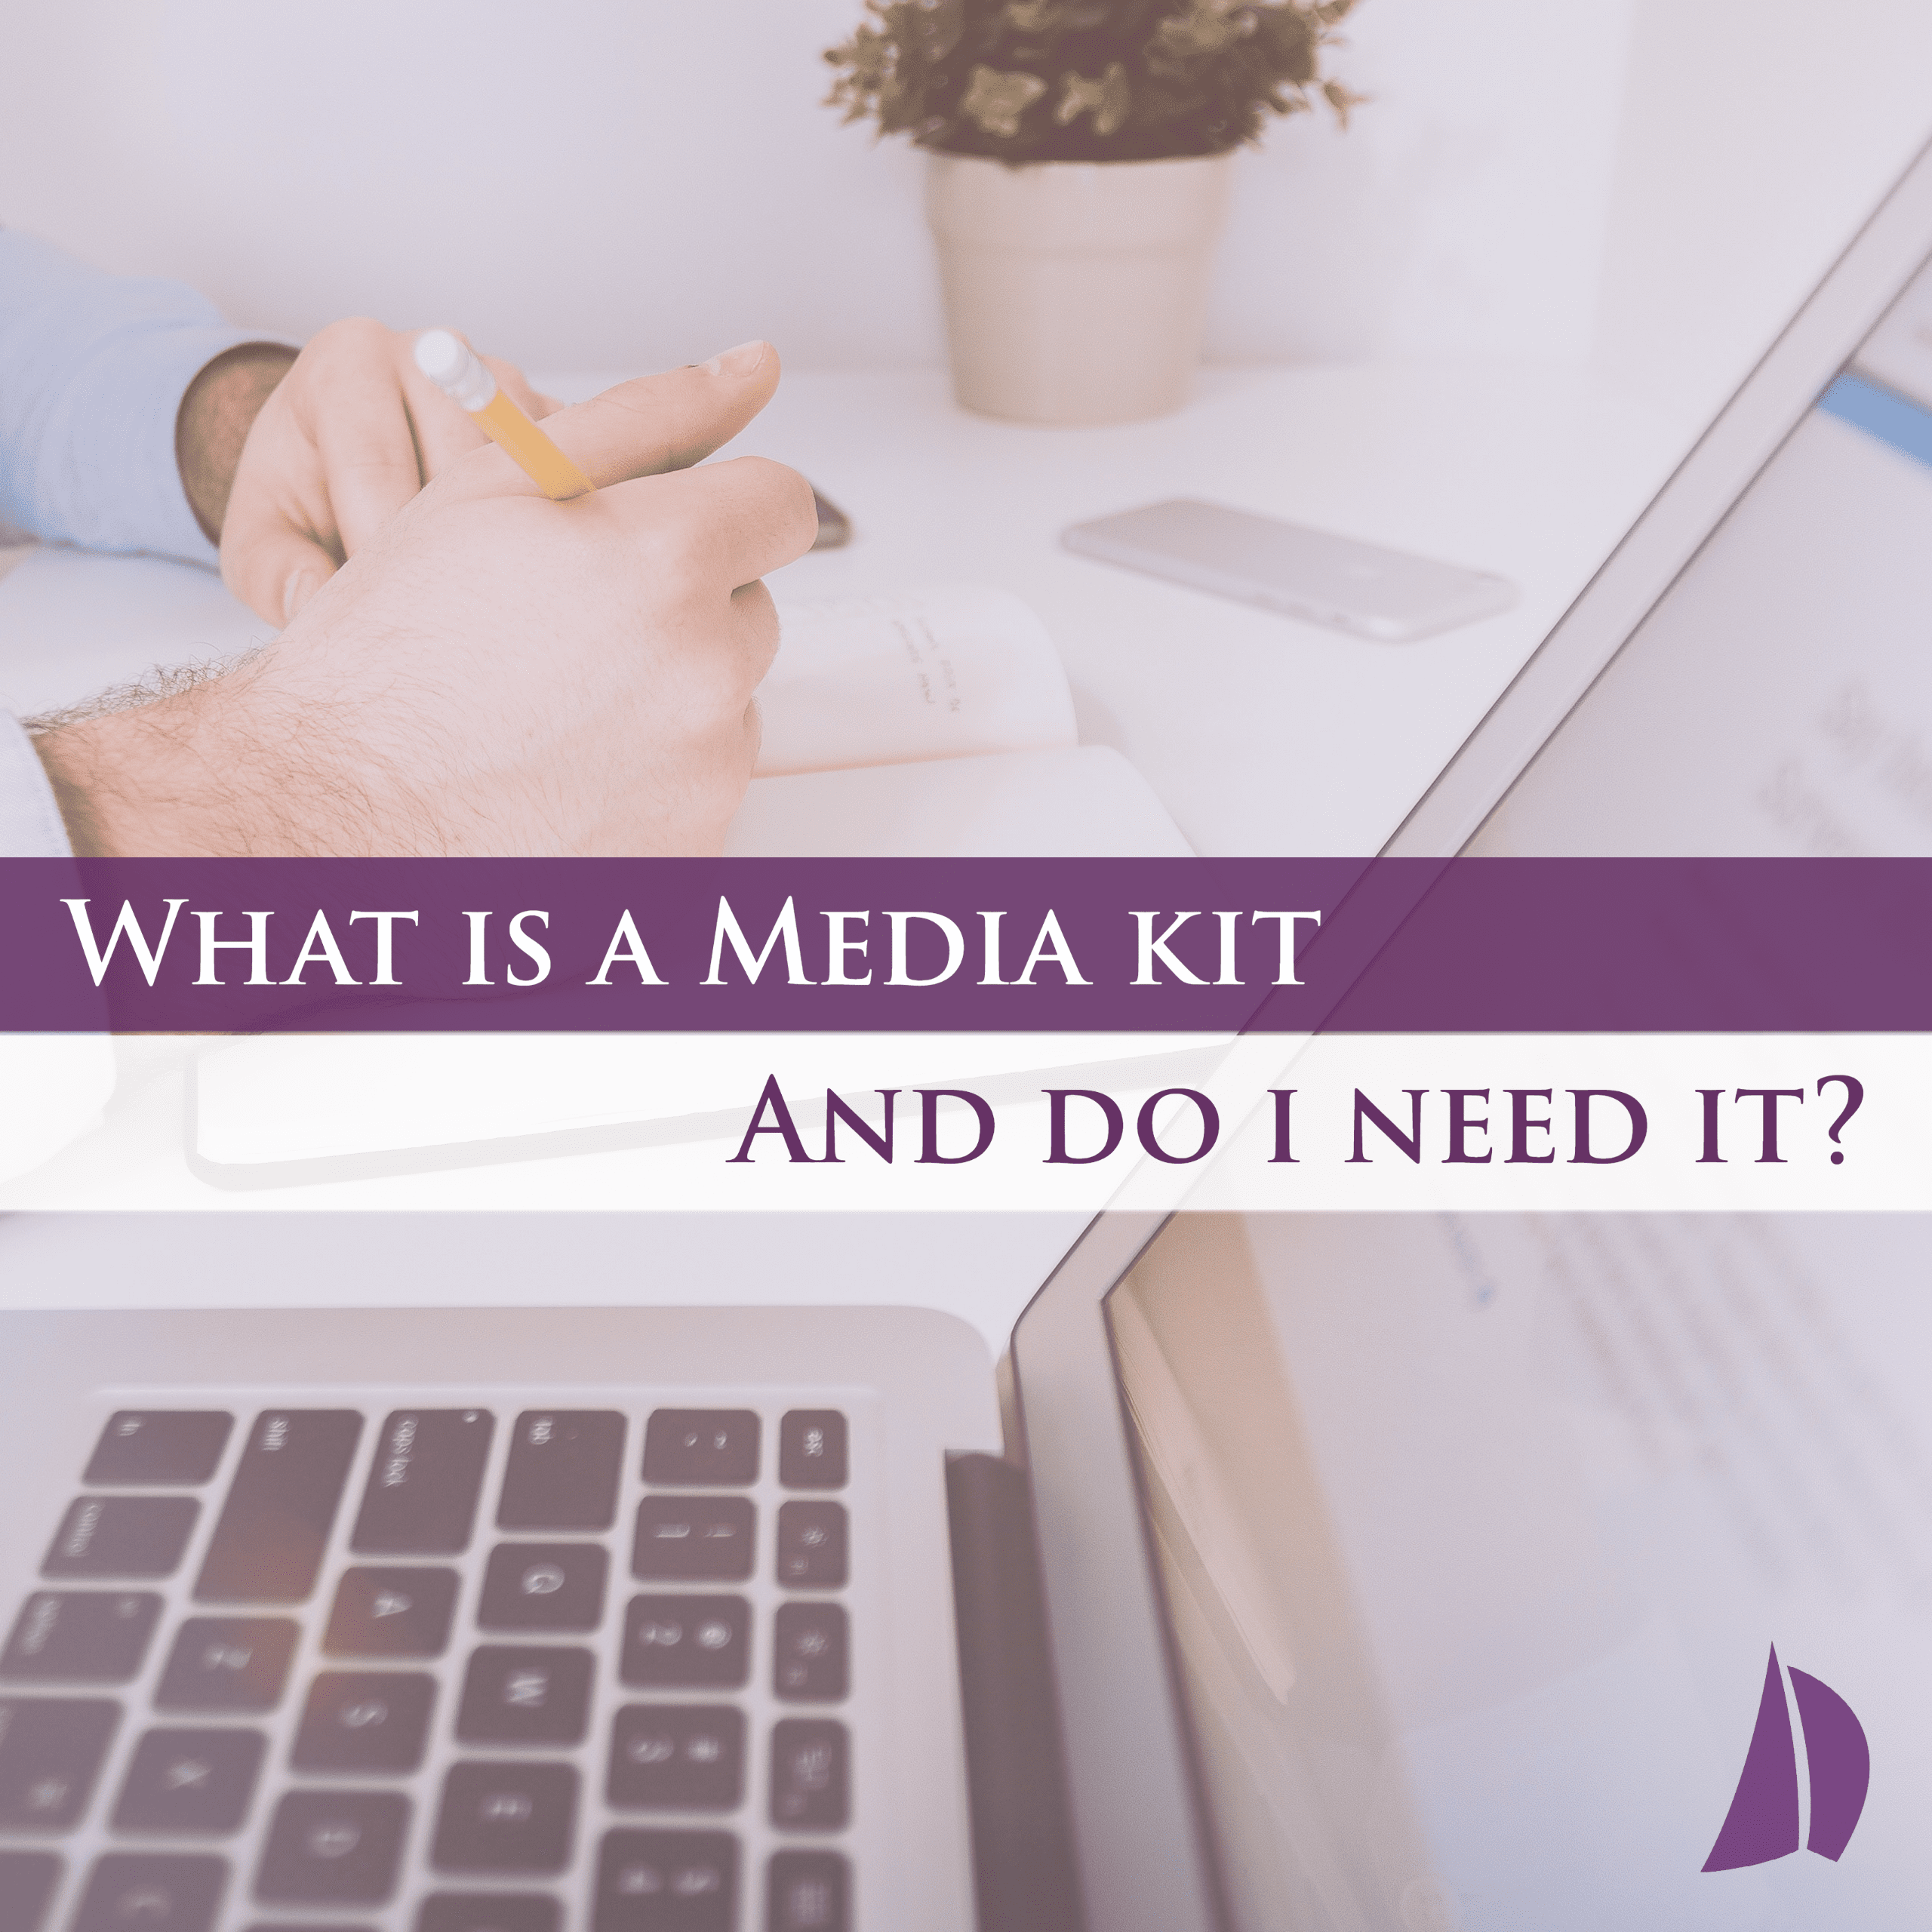 What Is a Media Kit and Do I Need It?